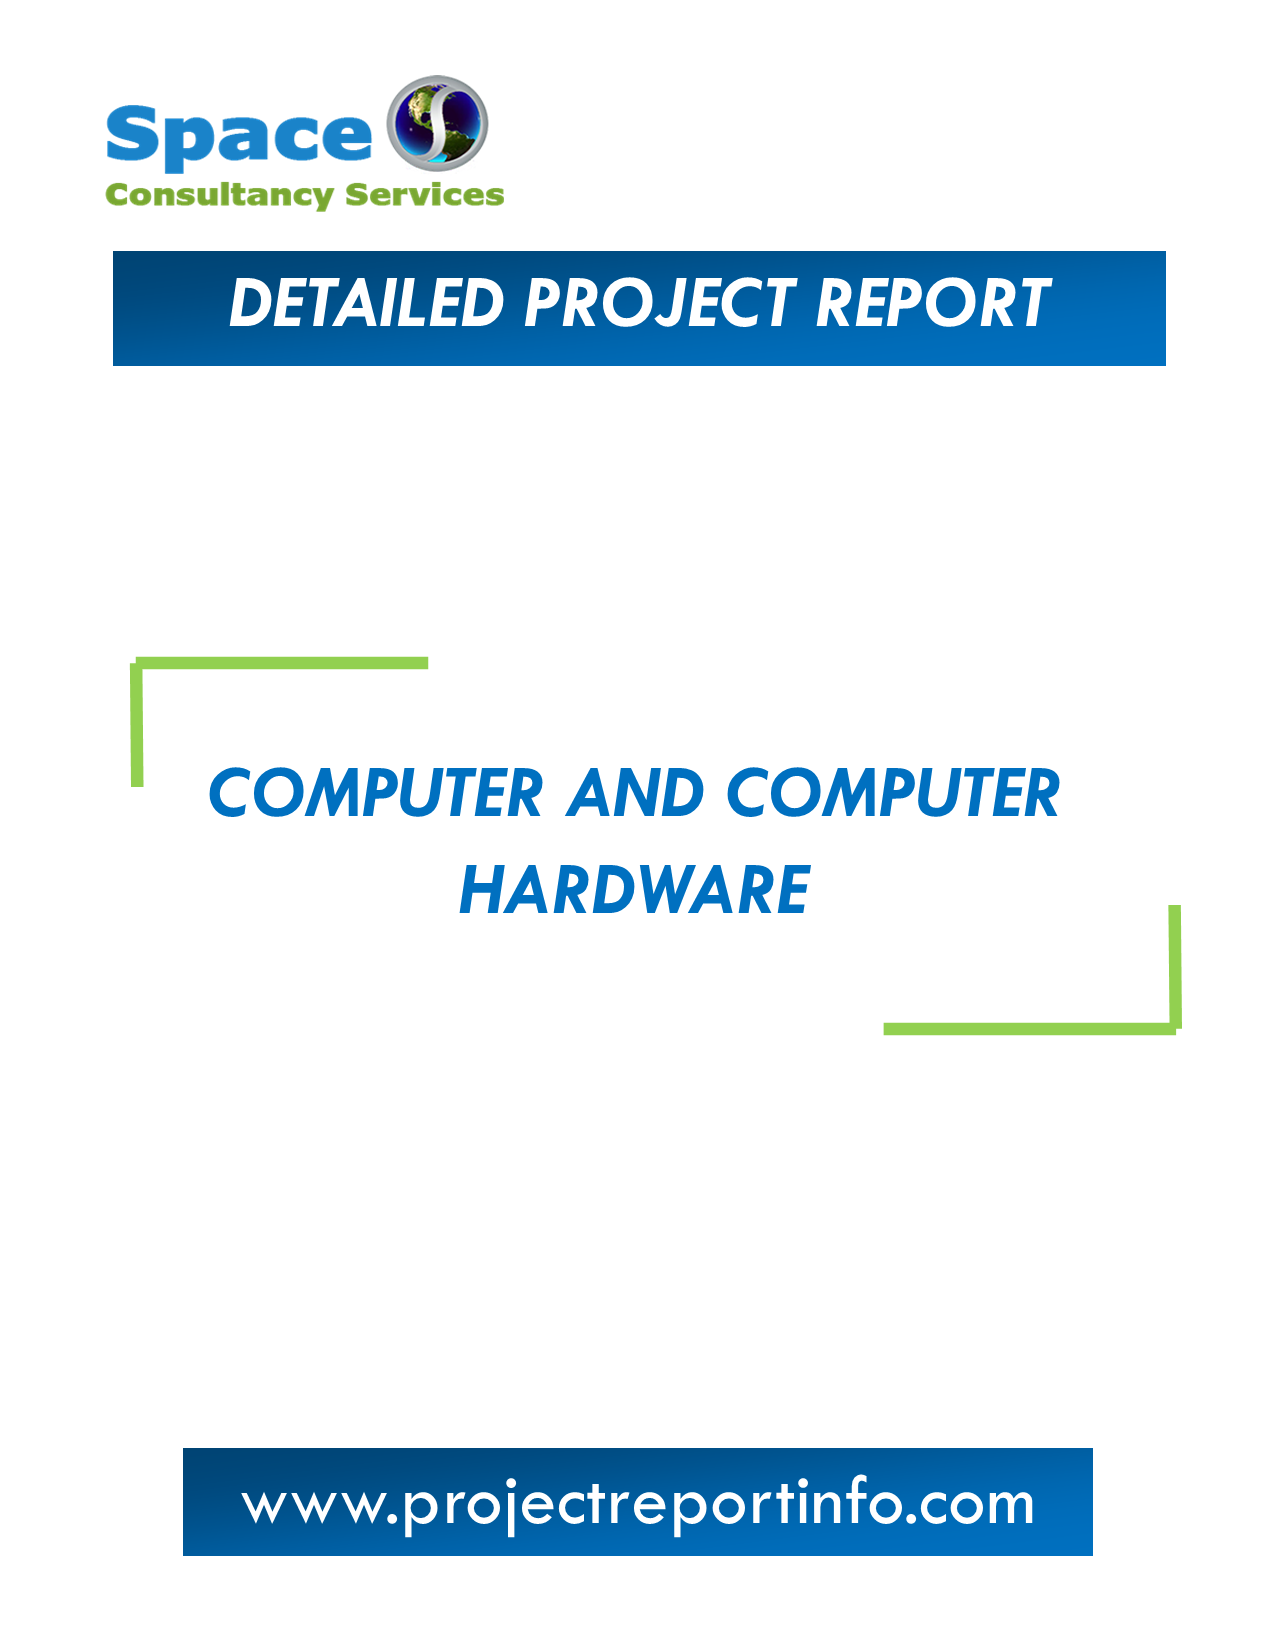 Computer and Computer hardware